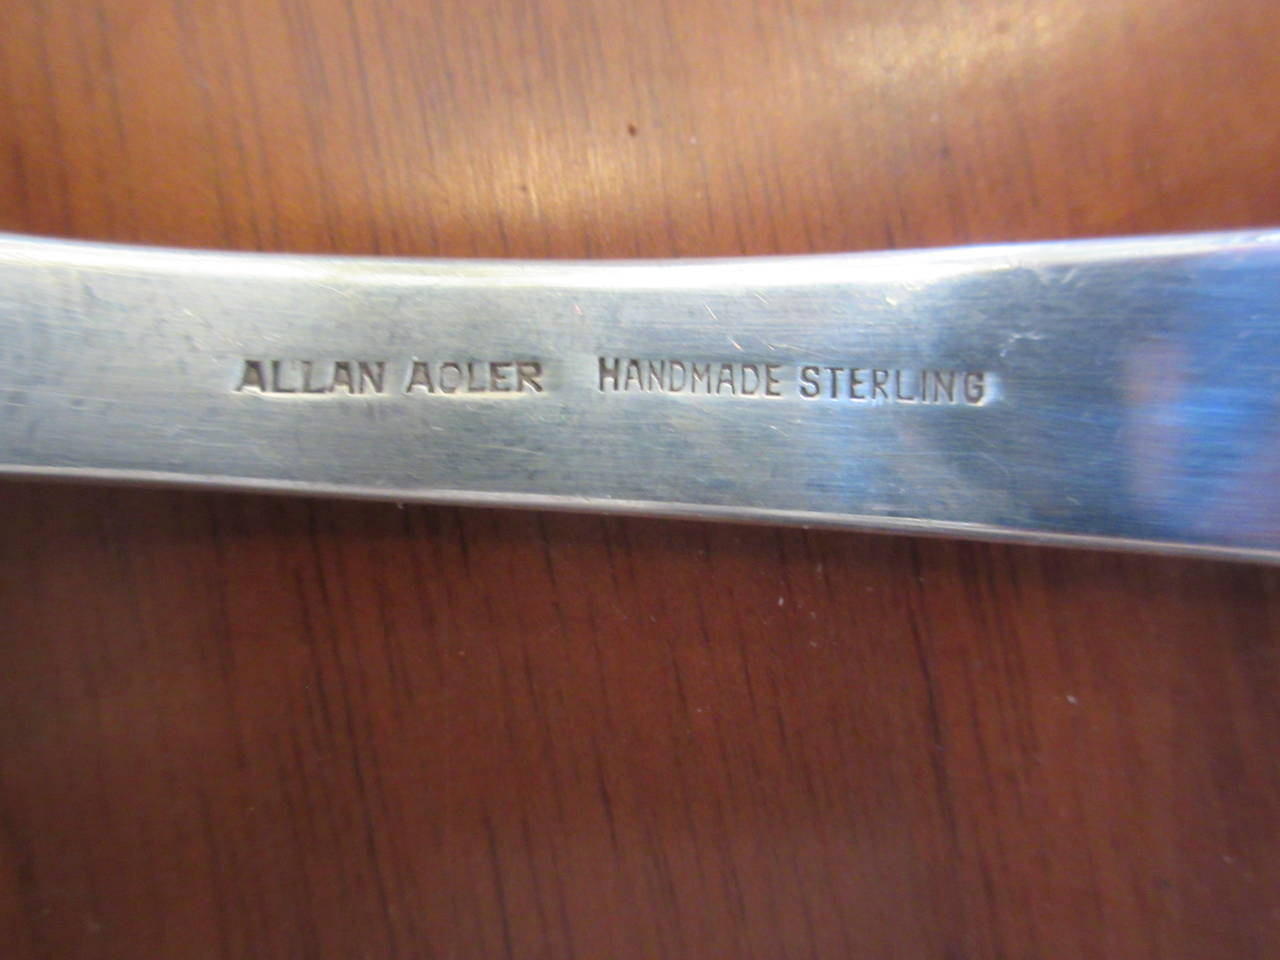 Allan Adler Salad or Serving Pieces Hand-Hammered Sterling 4